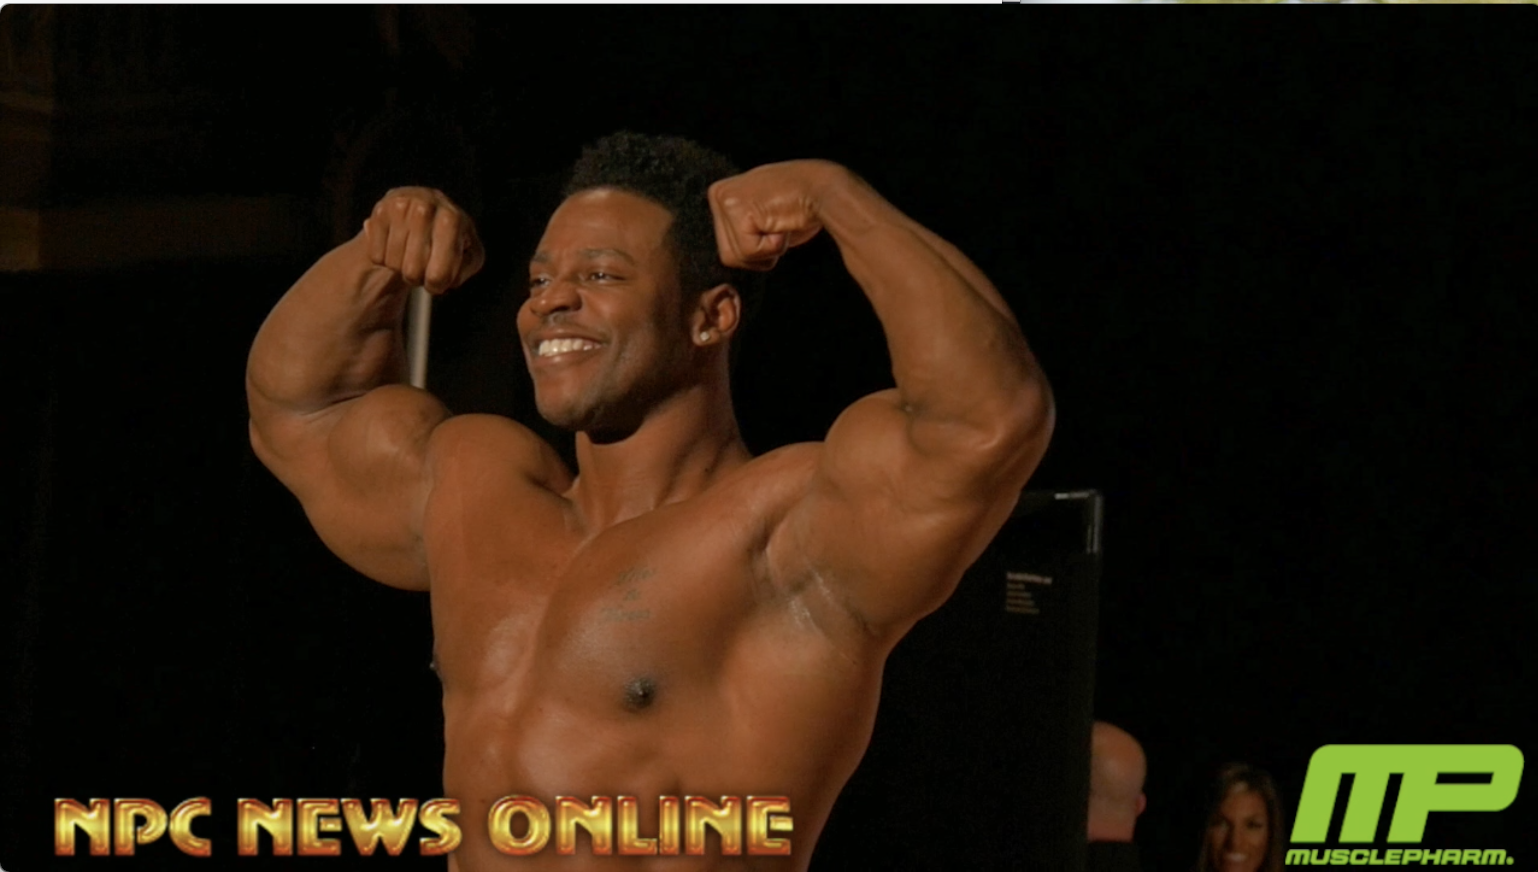 2018 IFBB Pittsburgh Pro Men's Classic Olympia Champ Breon Ansley Guest Posing Video